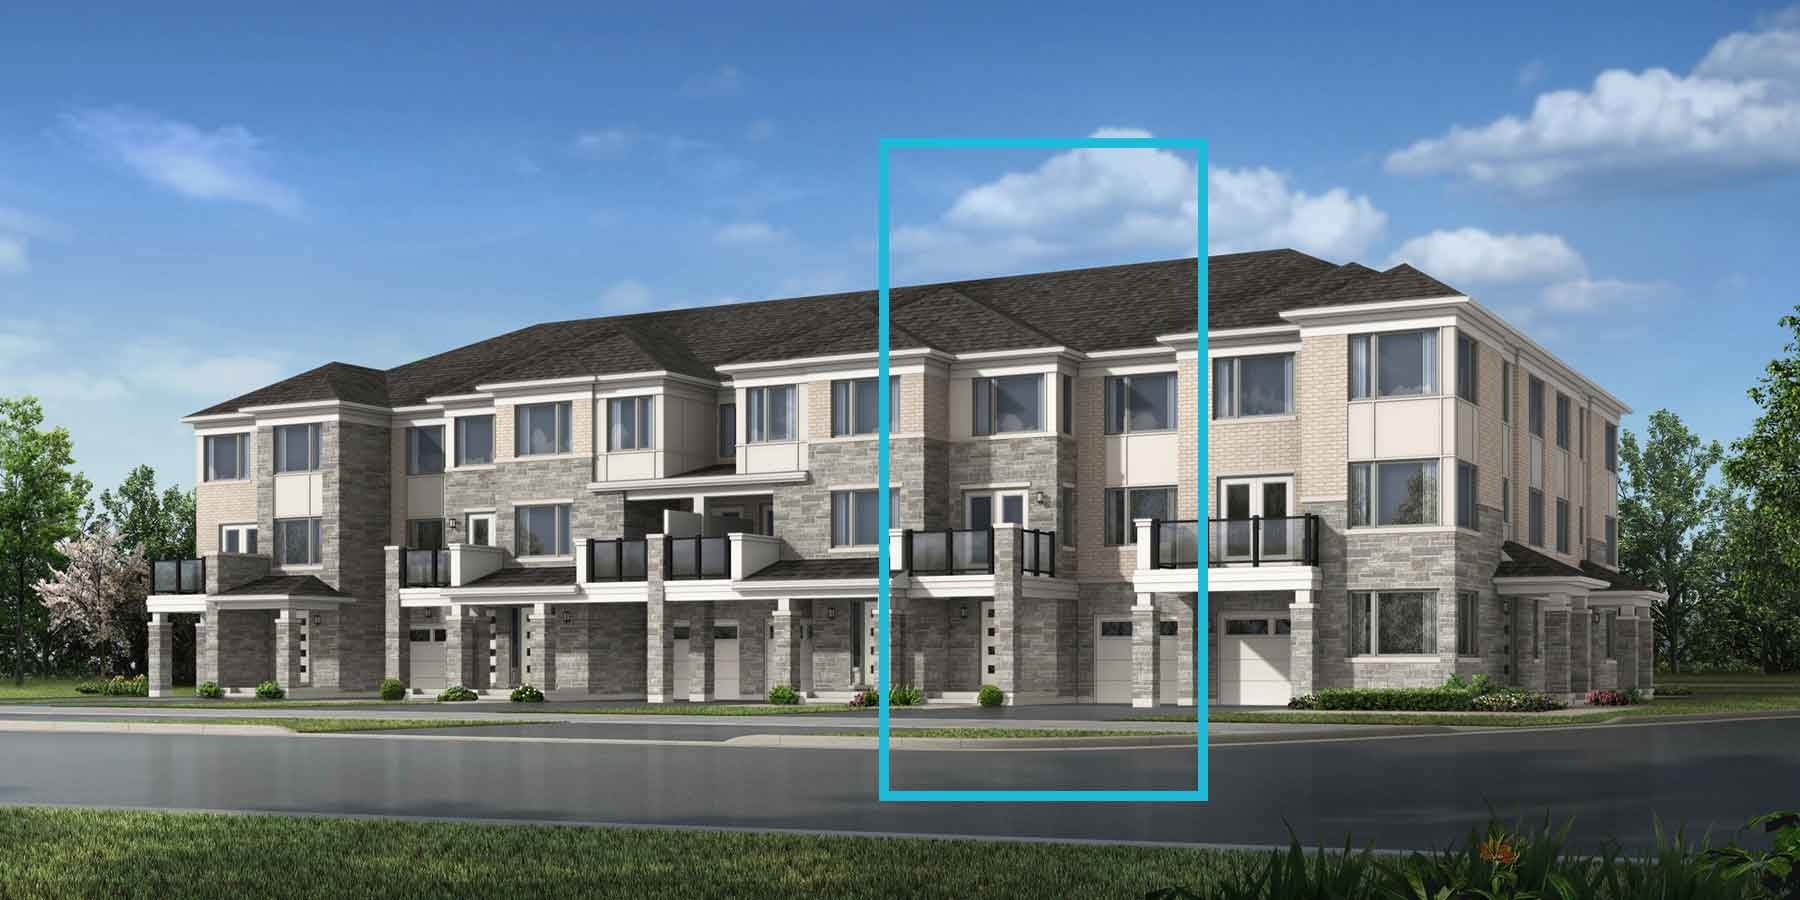 Ashburn Plan TownHomes at Seaton Whitevale in Pickering Ontario by Mattamy Homes